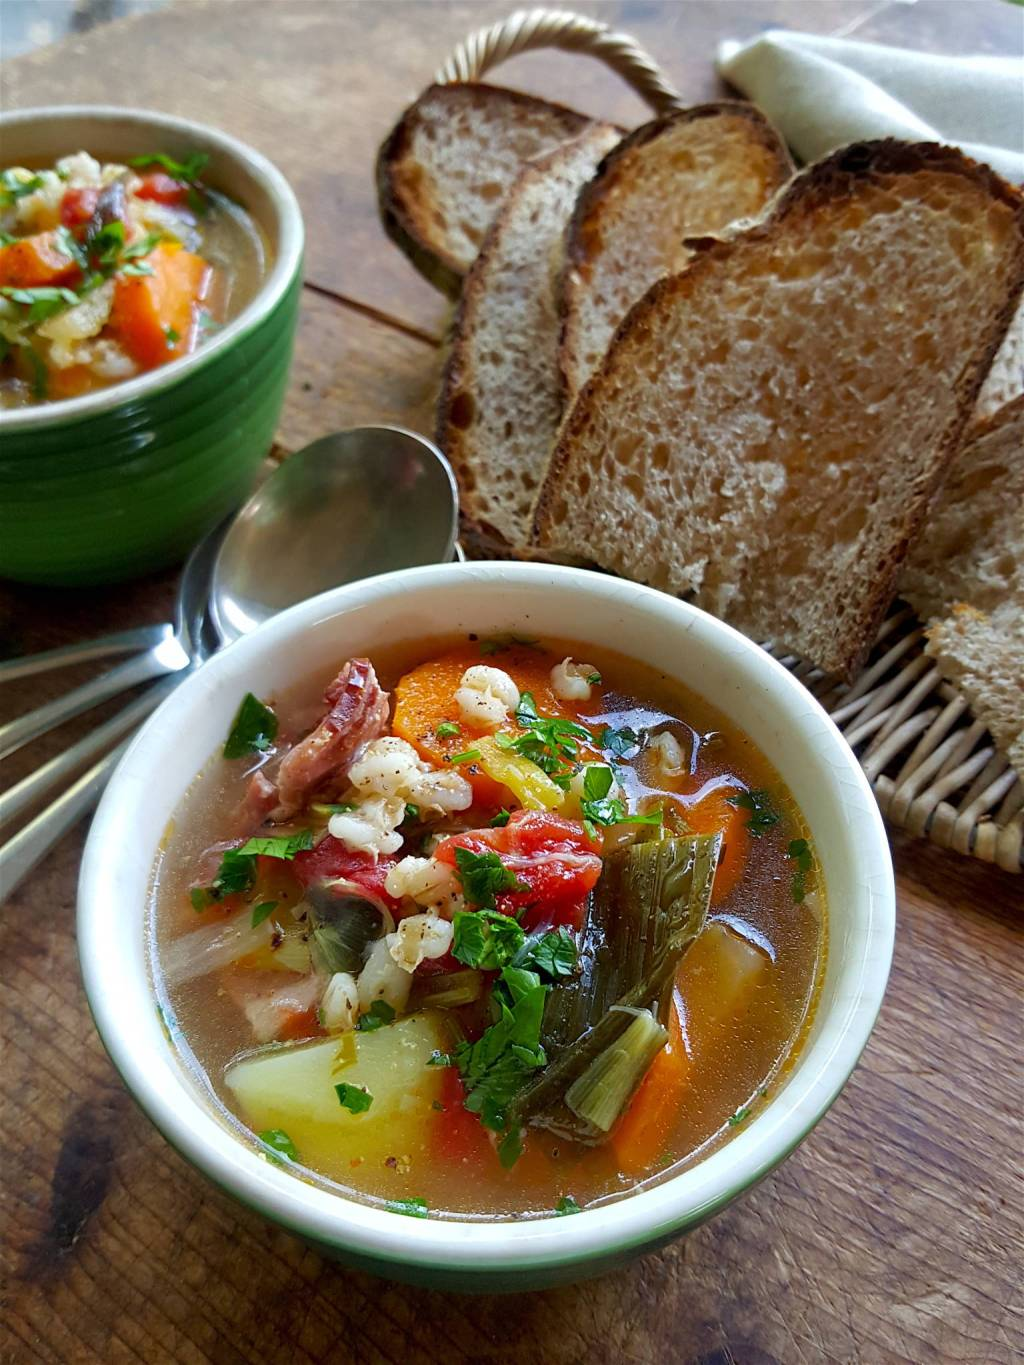 Good-for-you Vege & barley soup